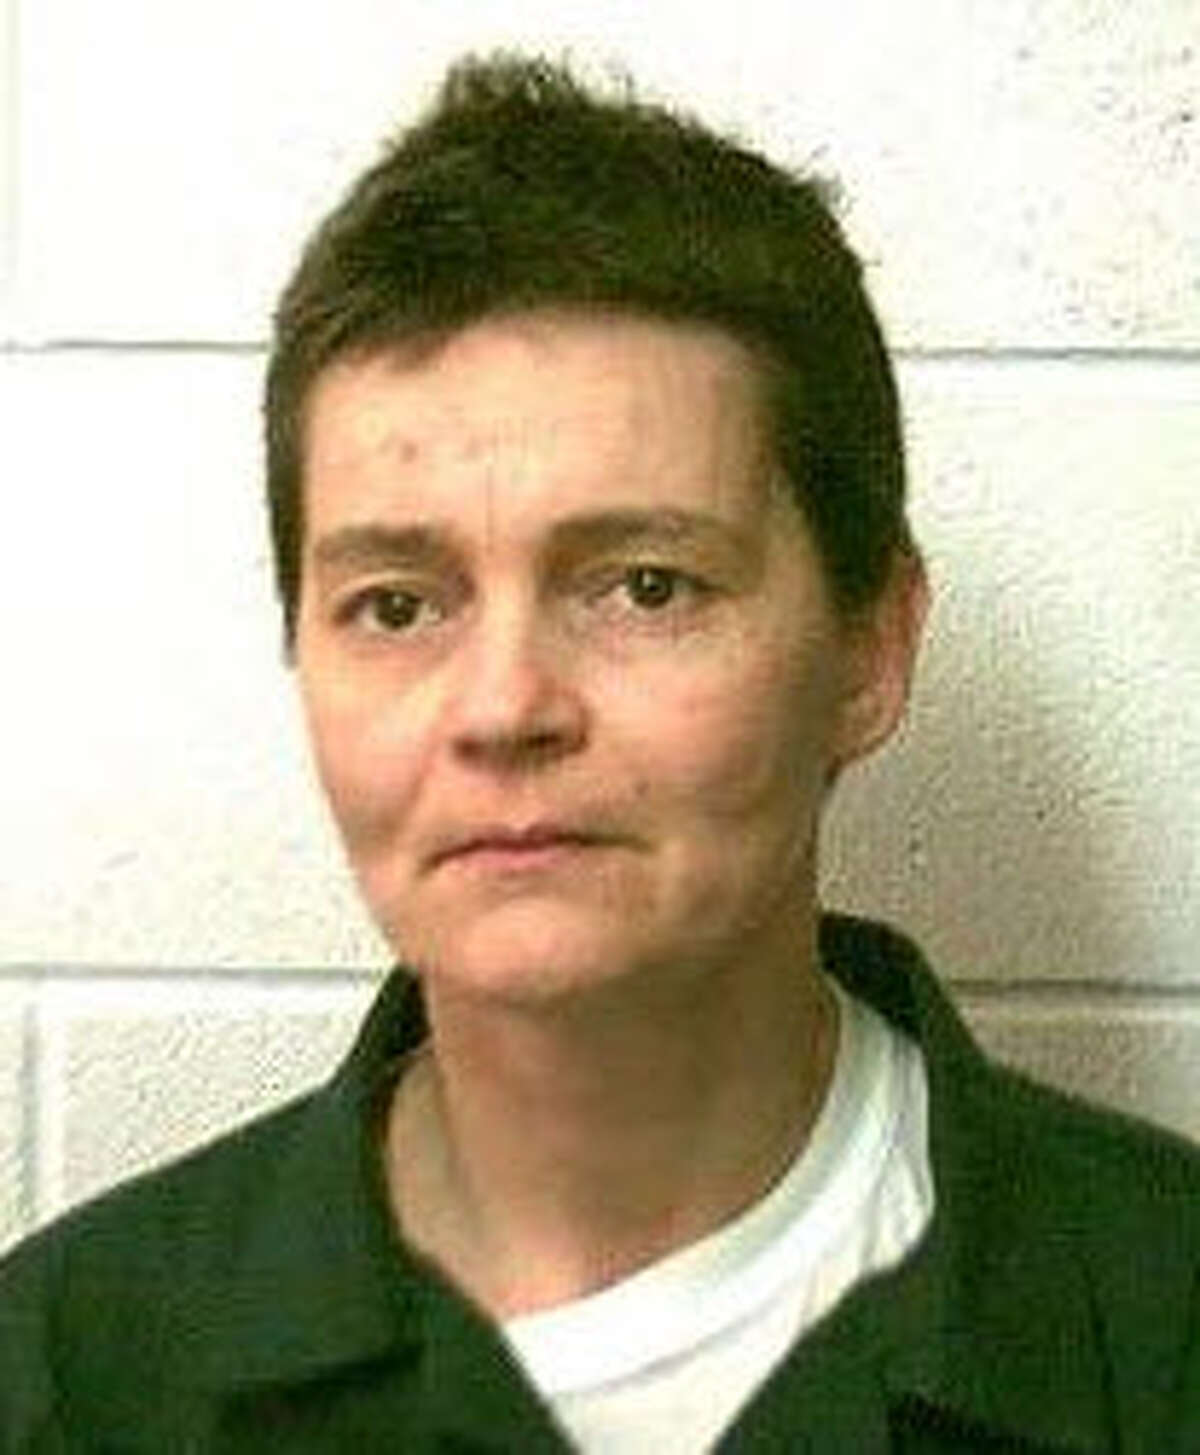 Sally Longton (State Department of Corrections and Community Supervision photo)